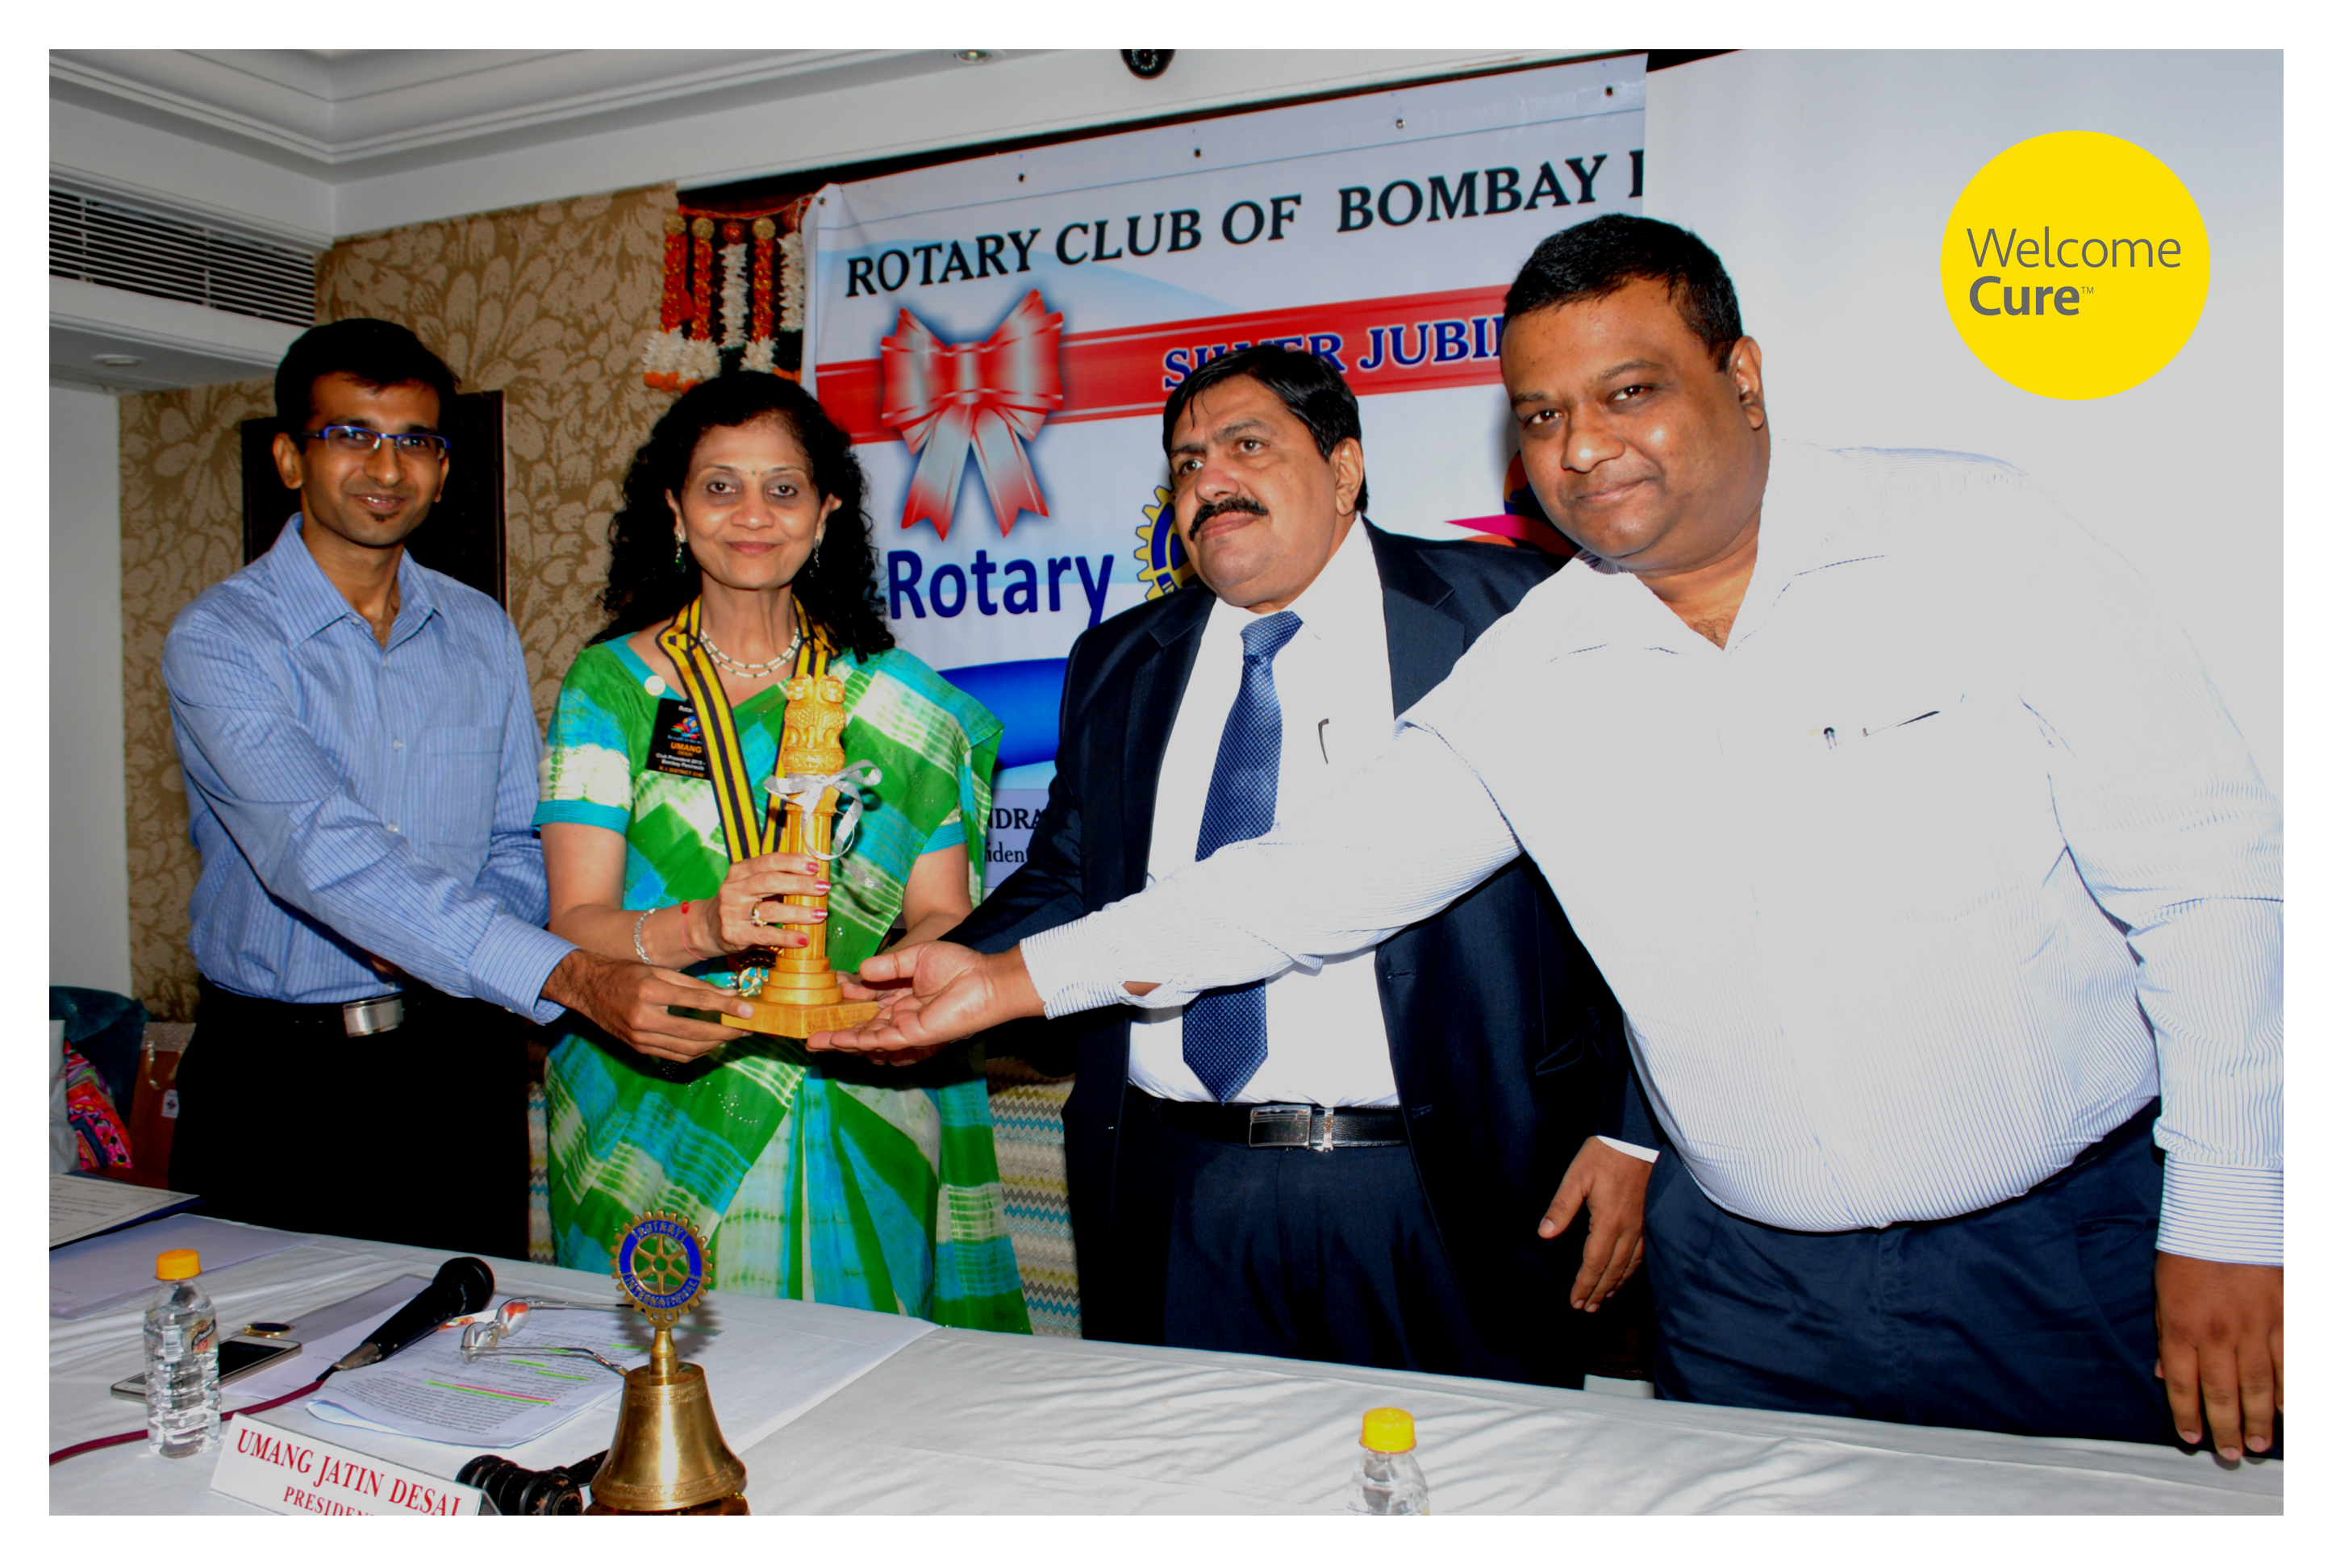 Rotary club event Image2